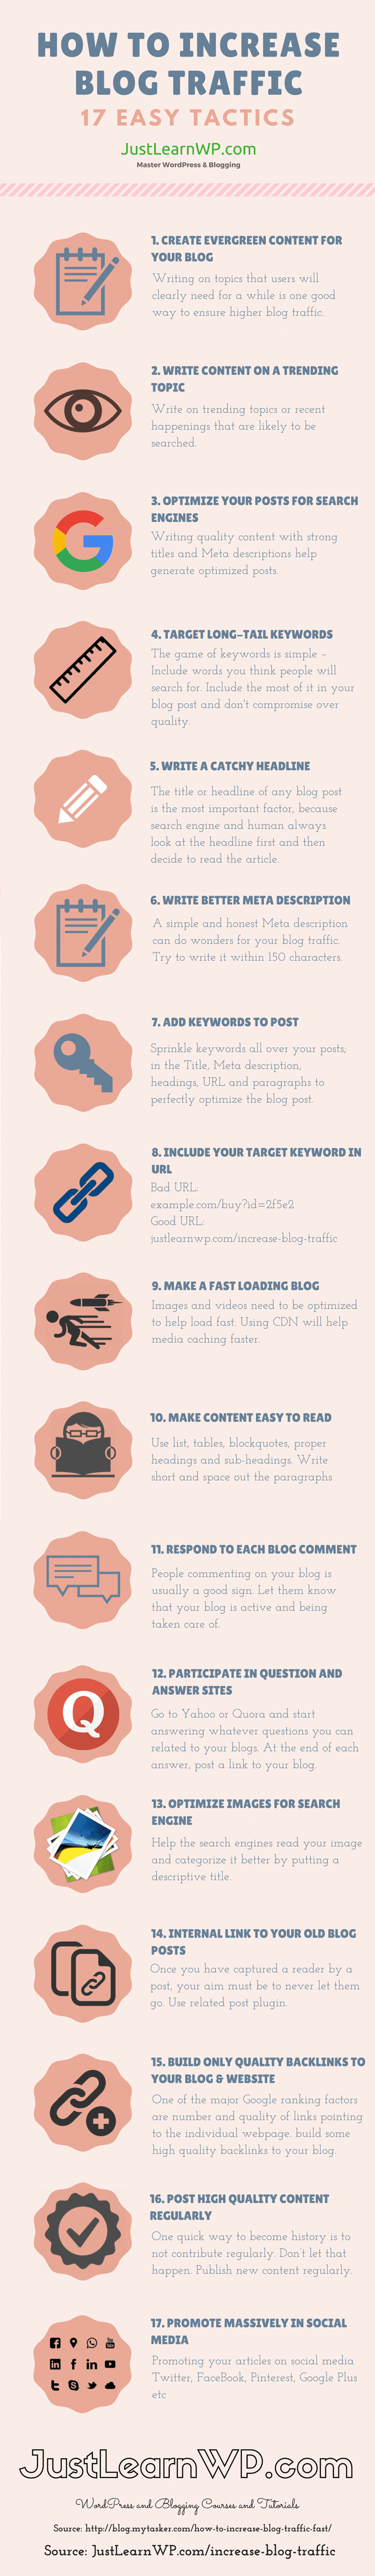 how-to-increase-blog-traffic-Infographic